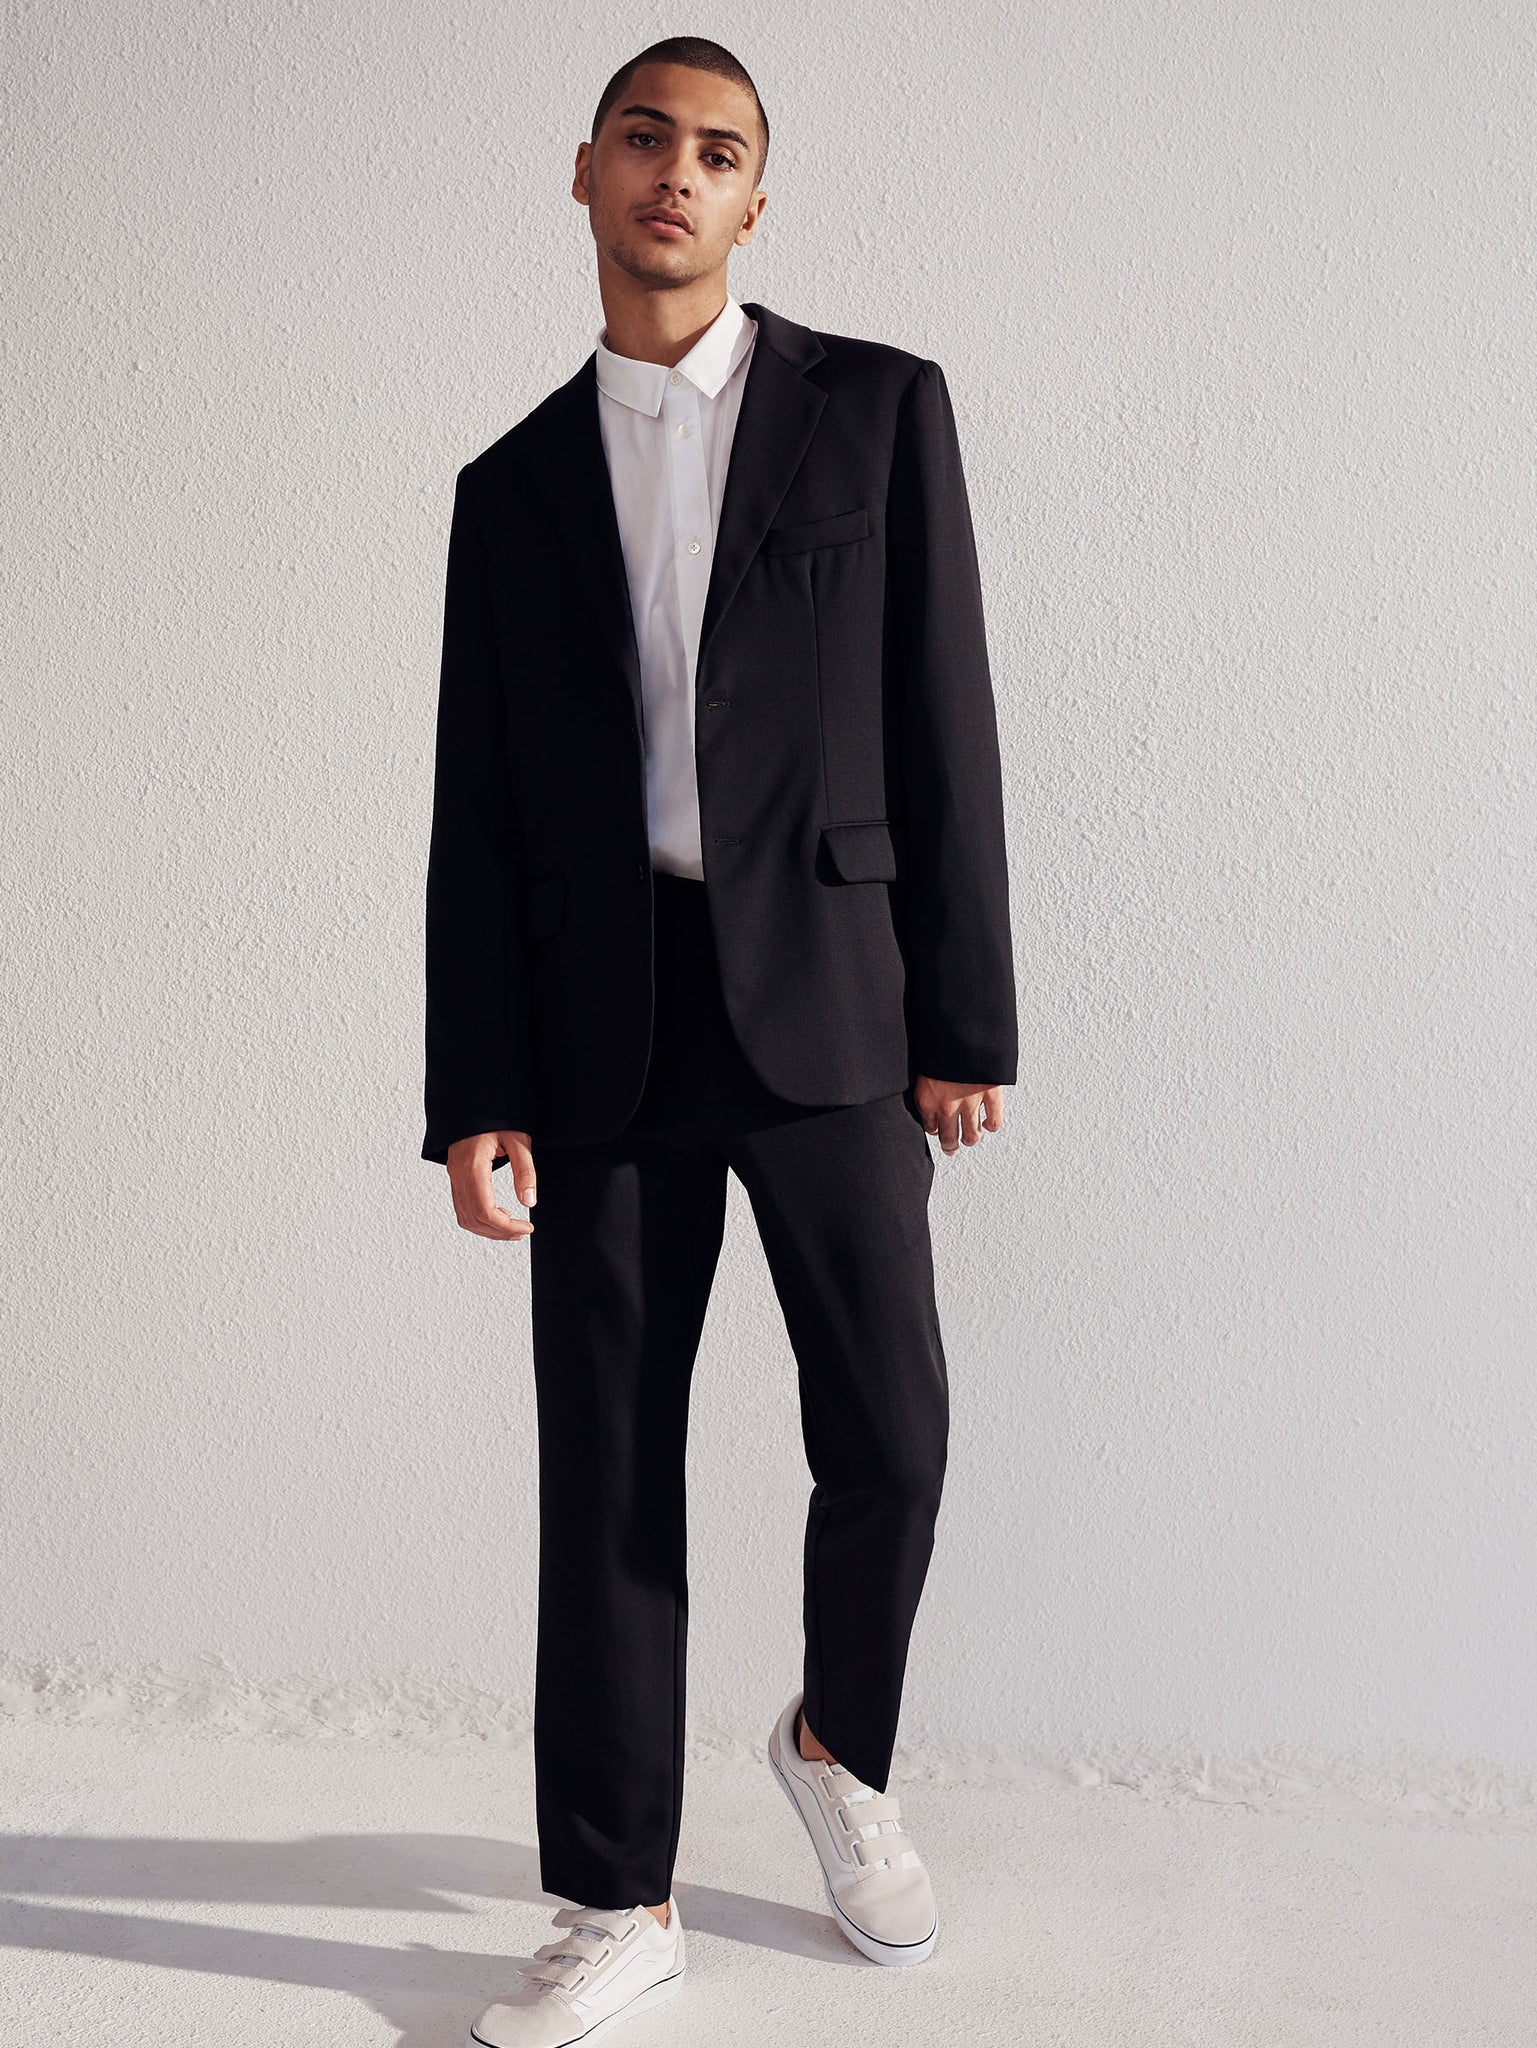 men fall winter 19 look 1